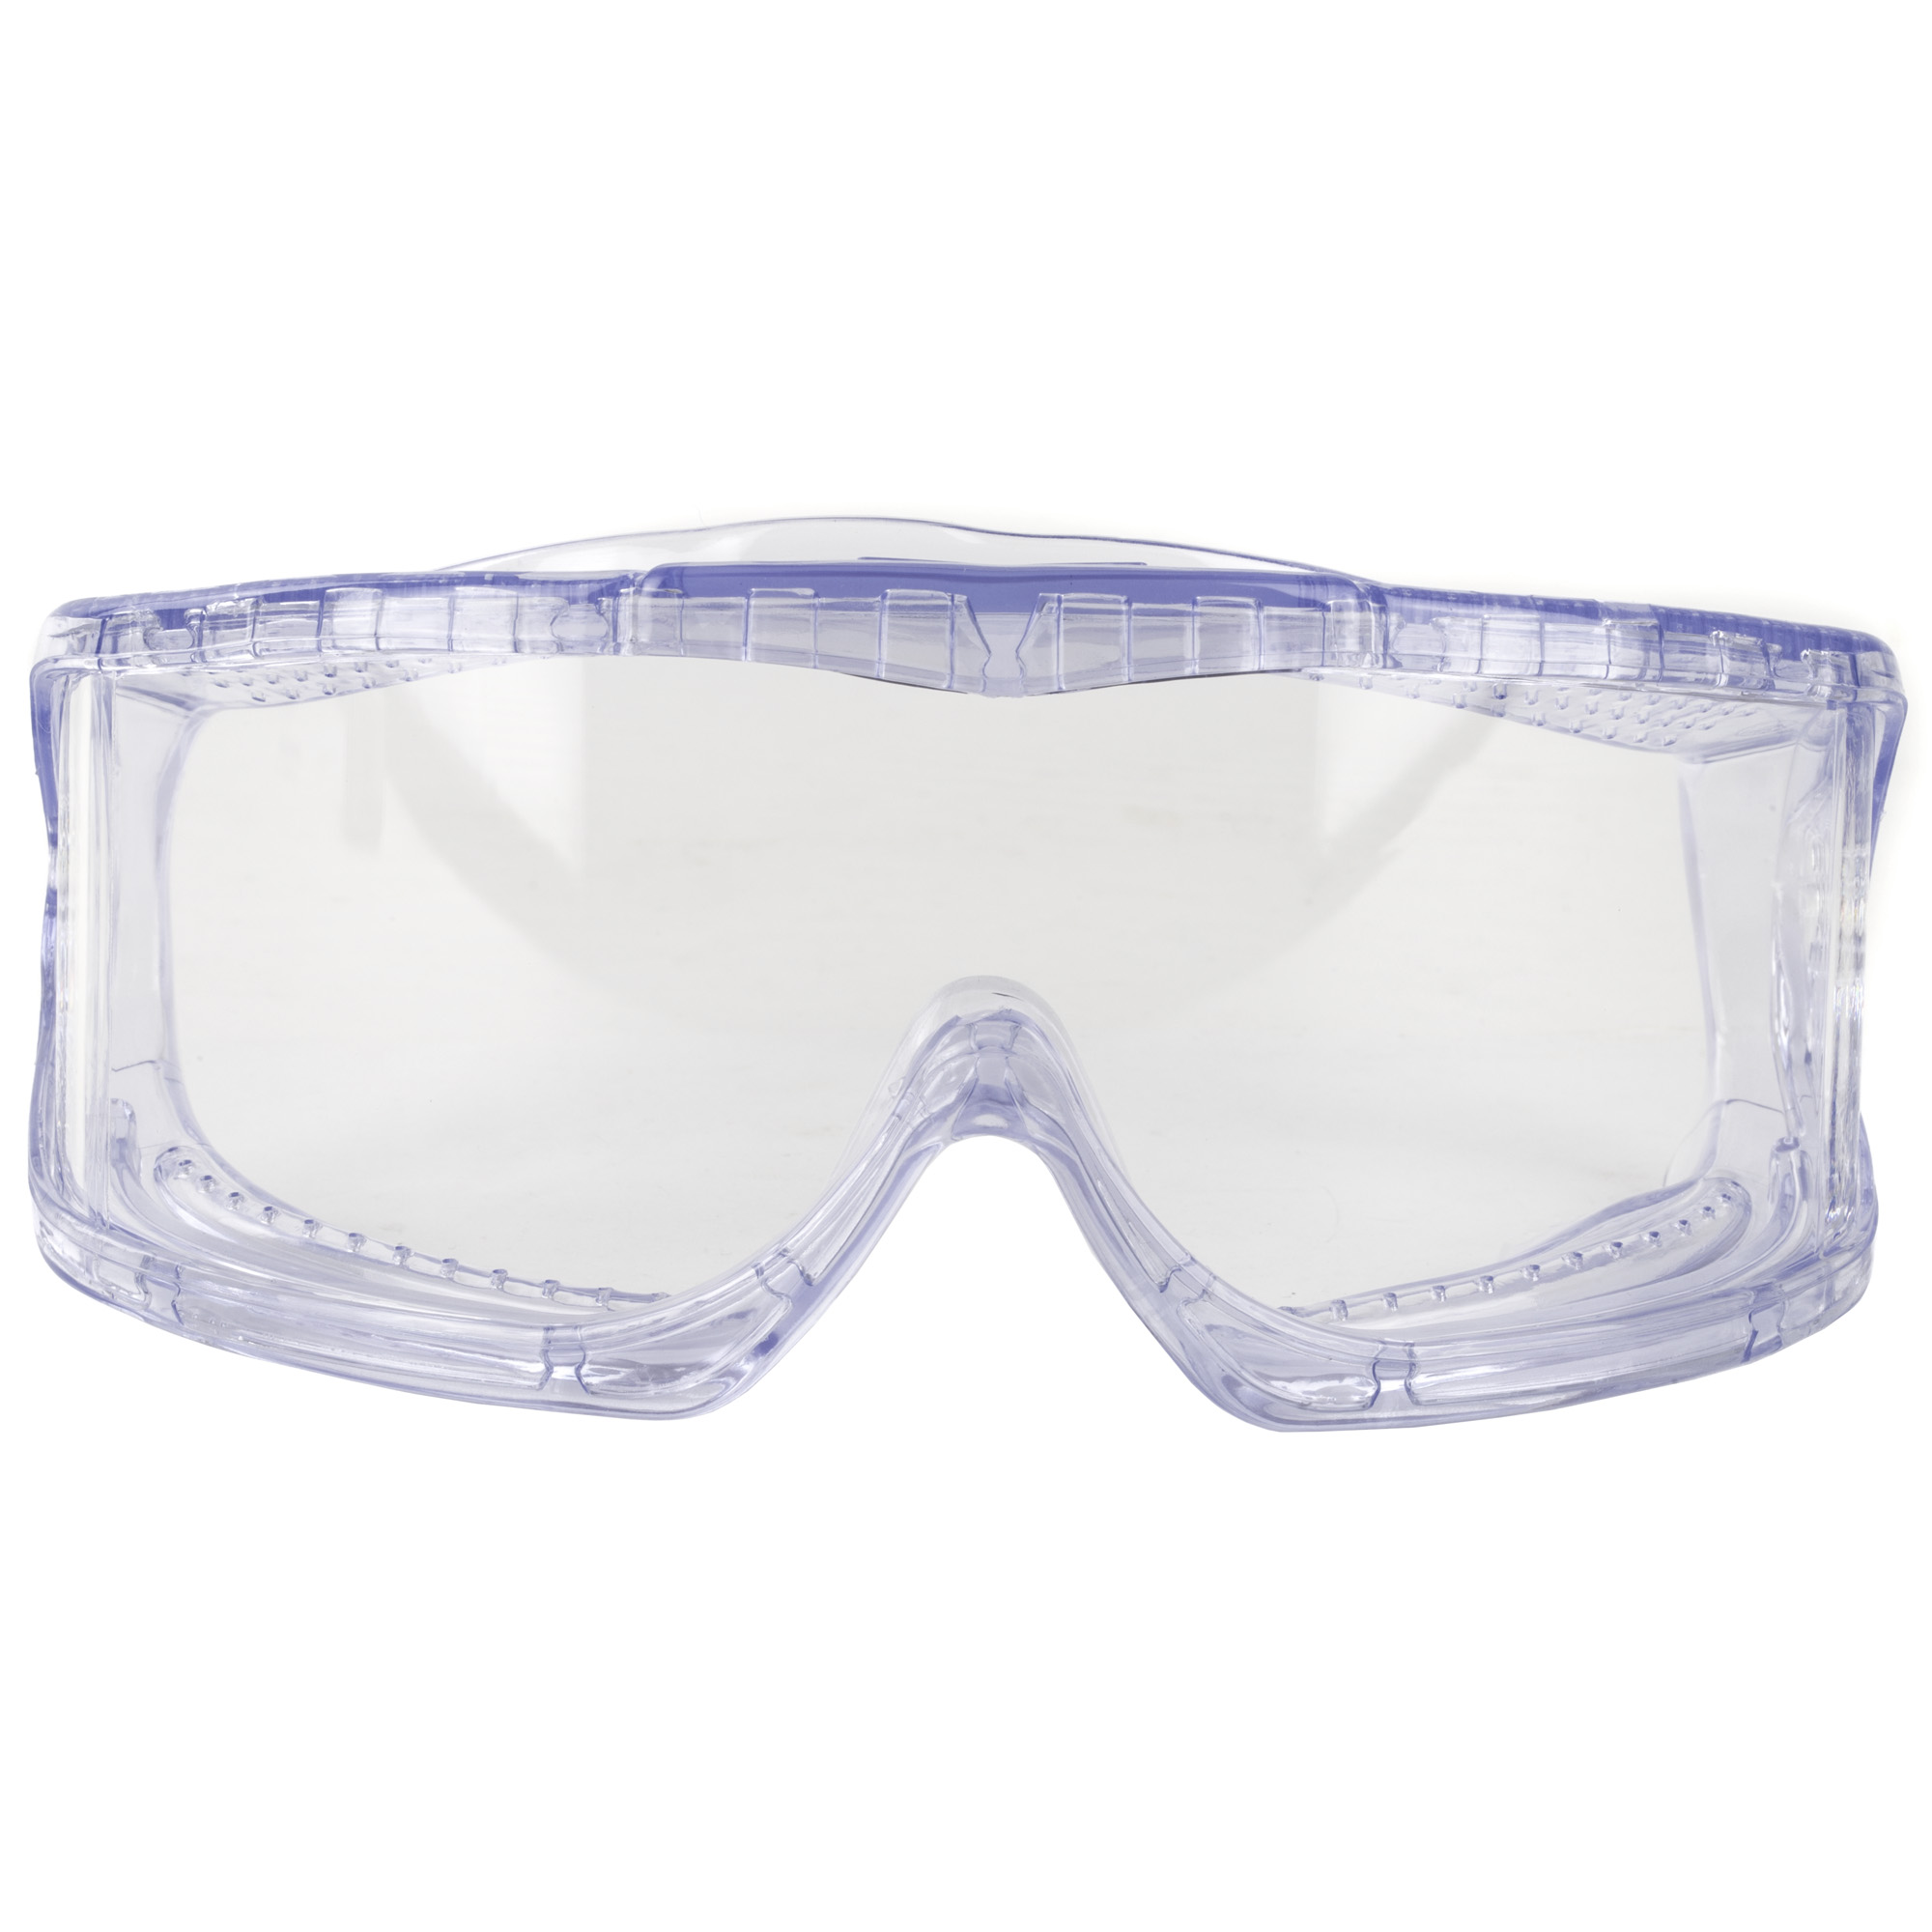 """The Uvex V-Maxx goggle has wrap-around styling for a 180 degree"""" clear field of vision. Can be worn over most prescription eyewear."""